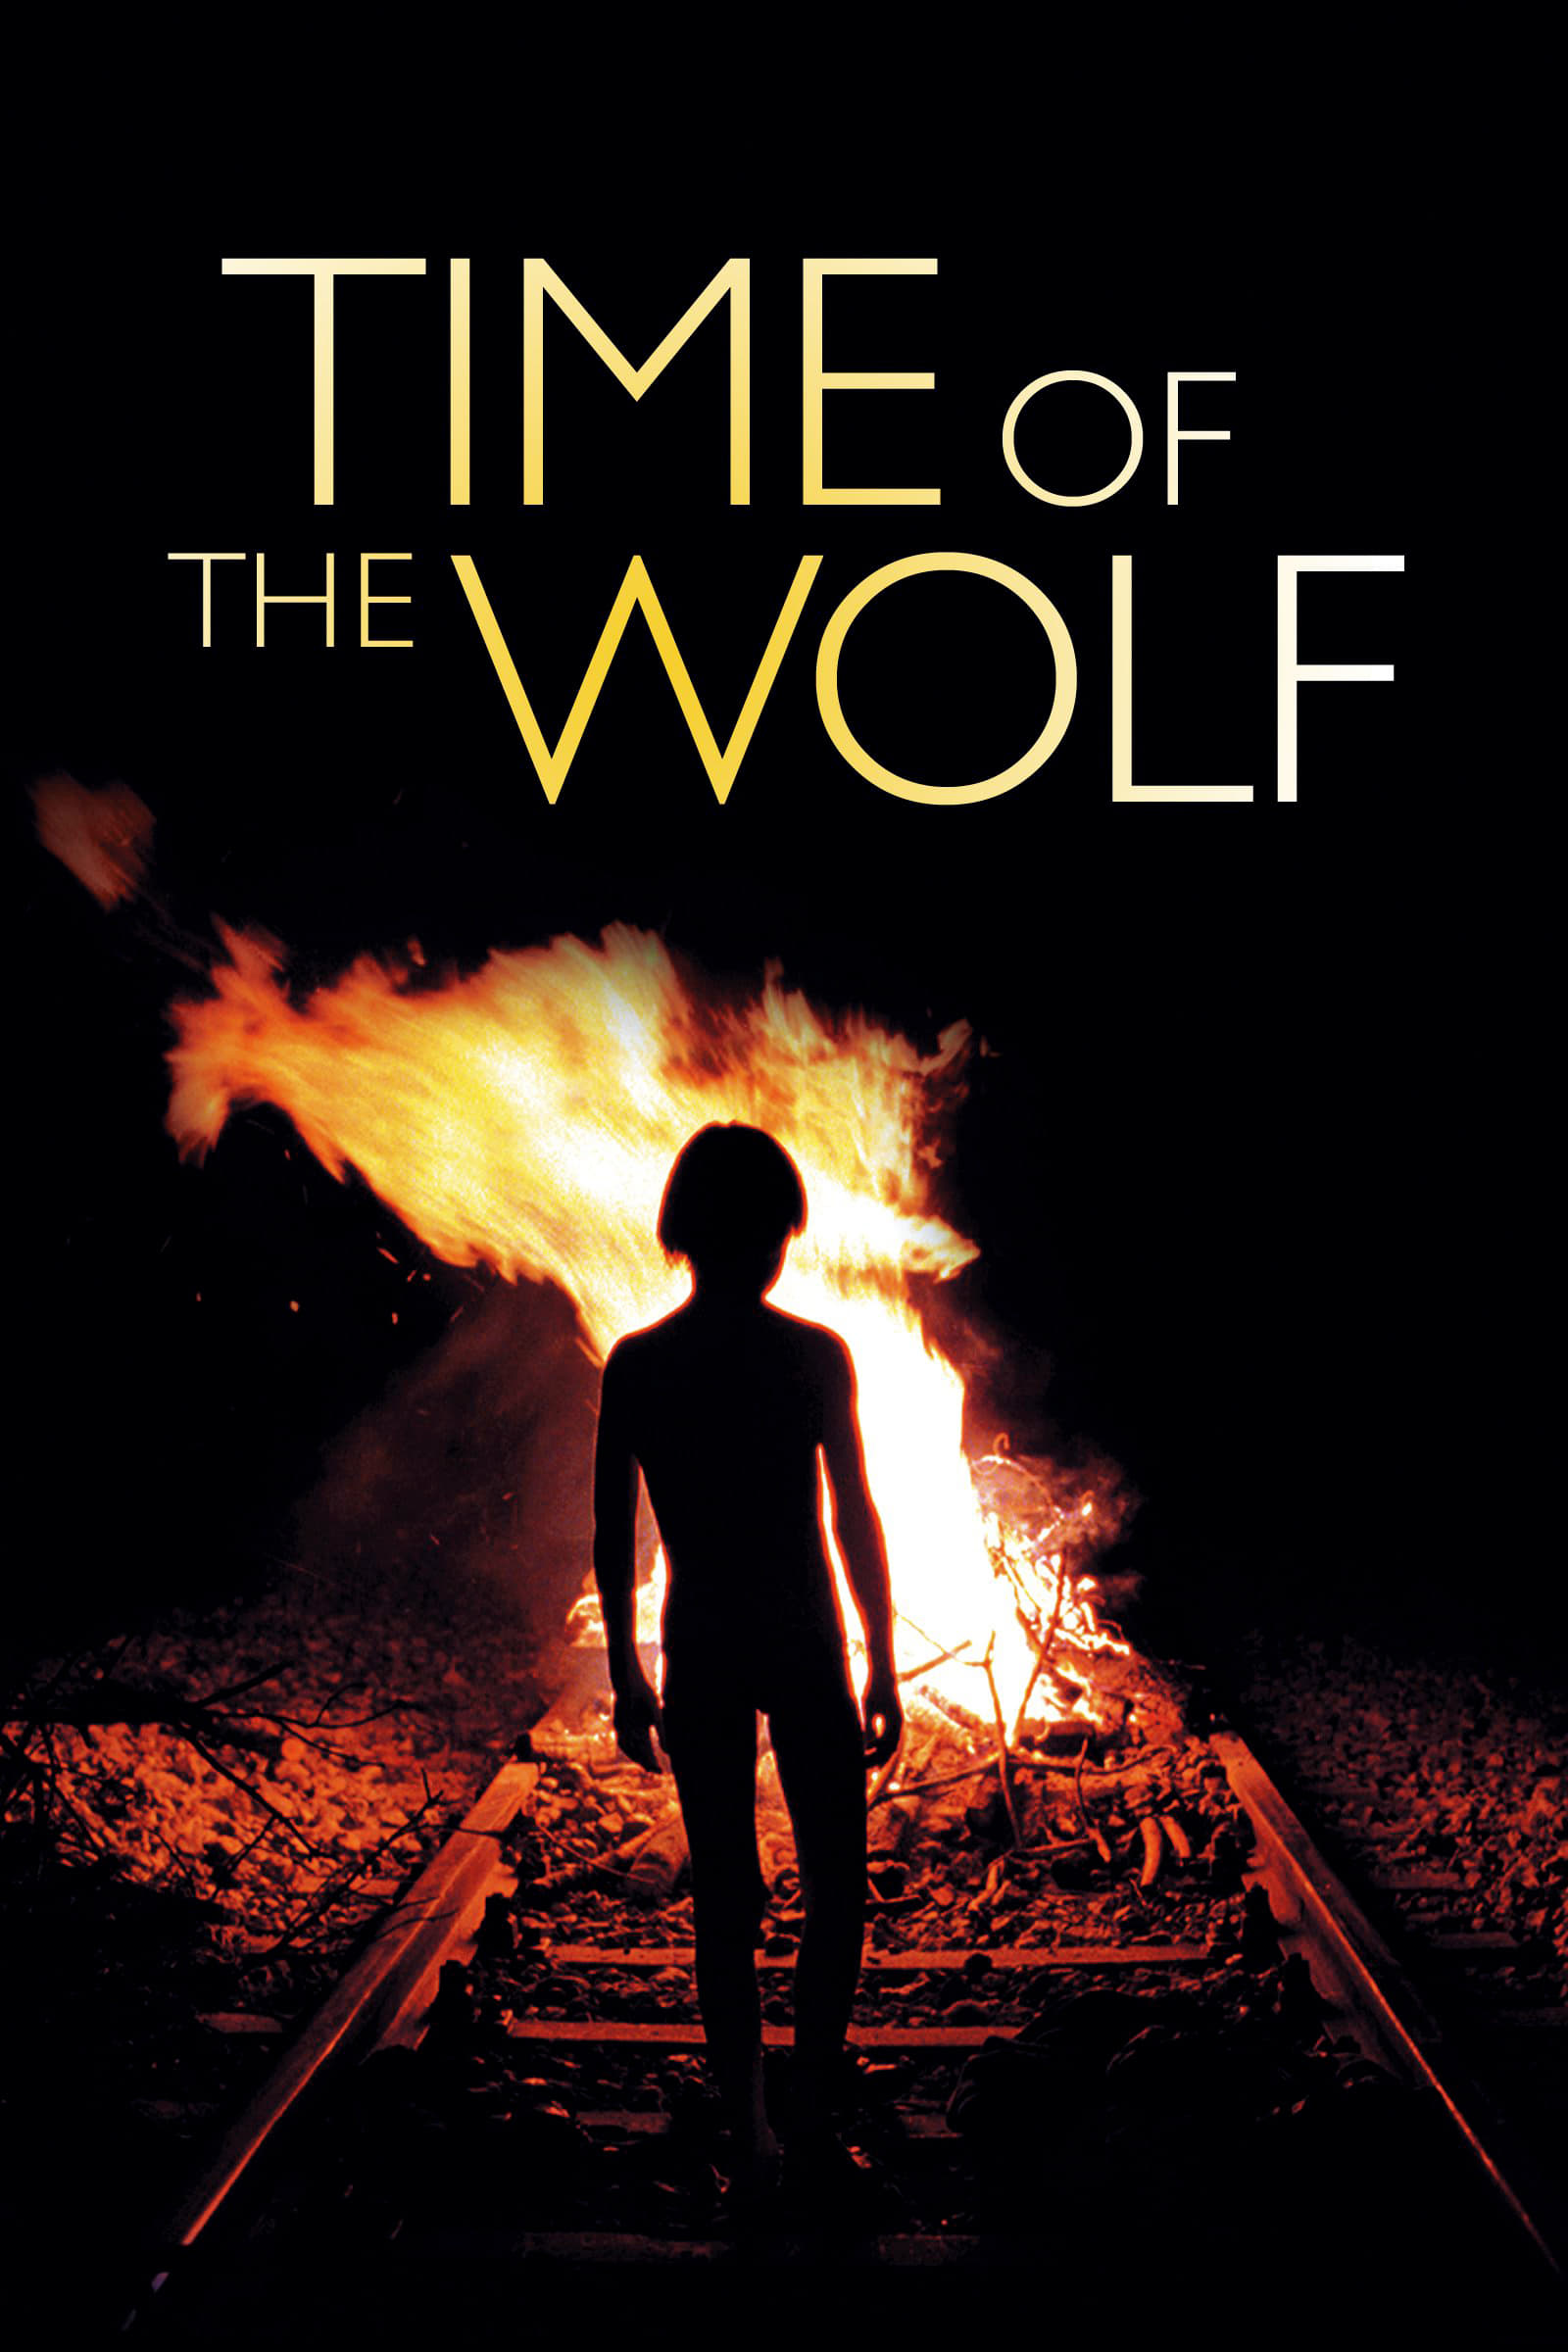 Time of the Wolf (2003)